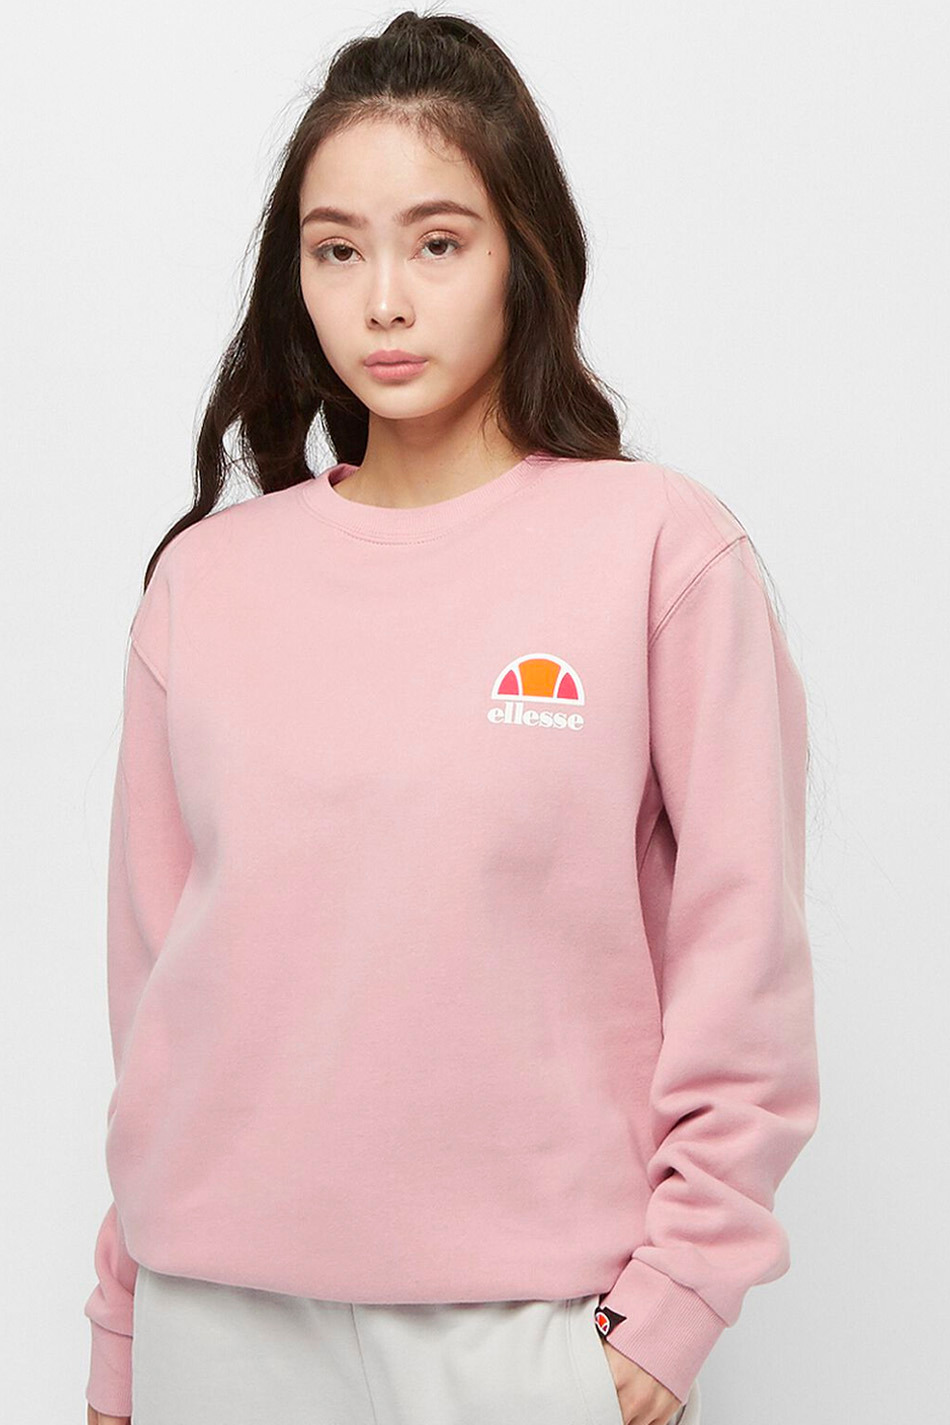 Ellesse Ashburton Sweatshirt Light Pink